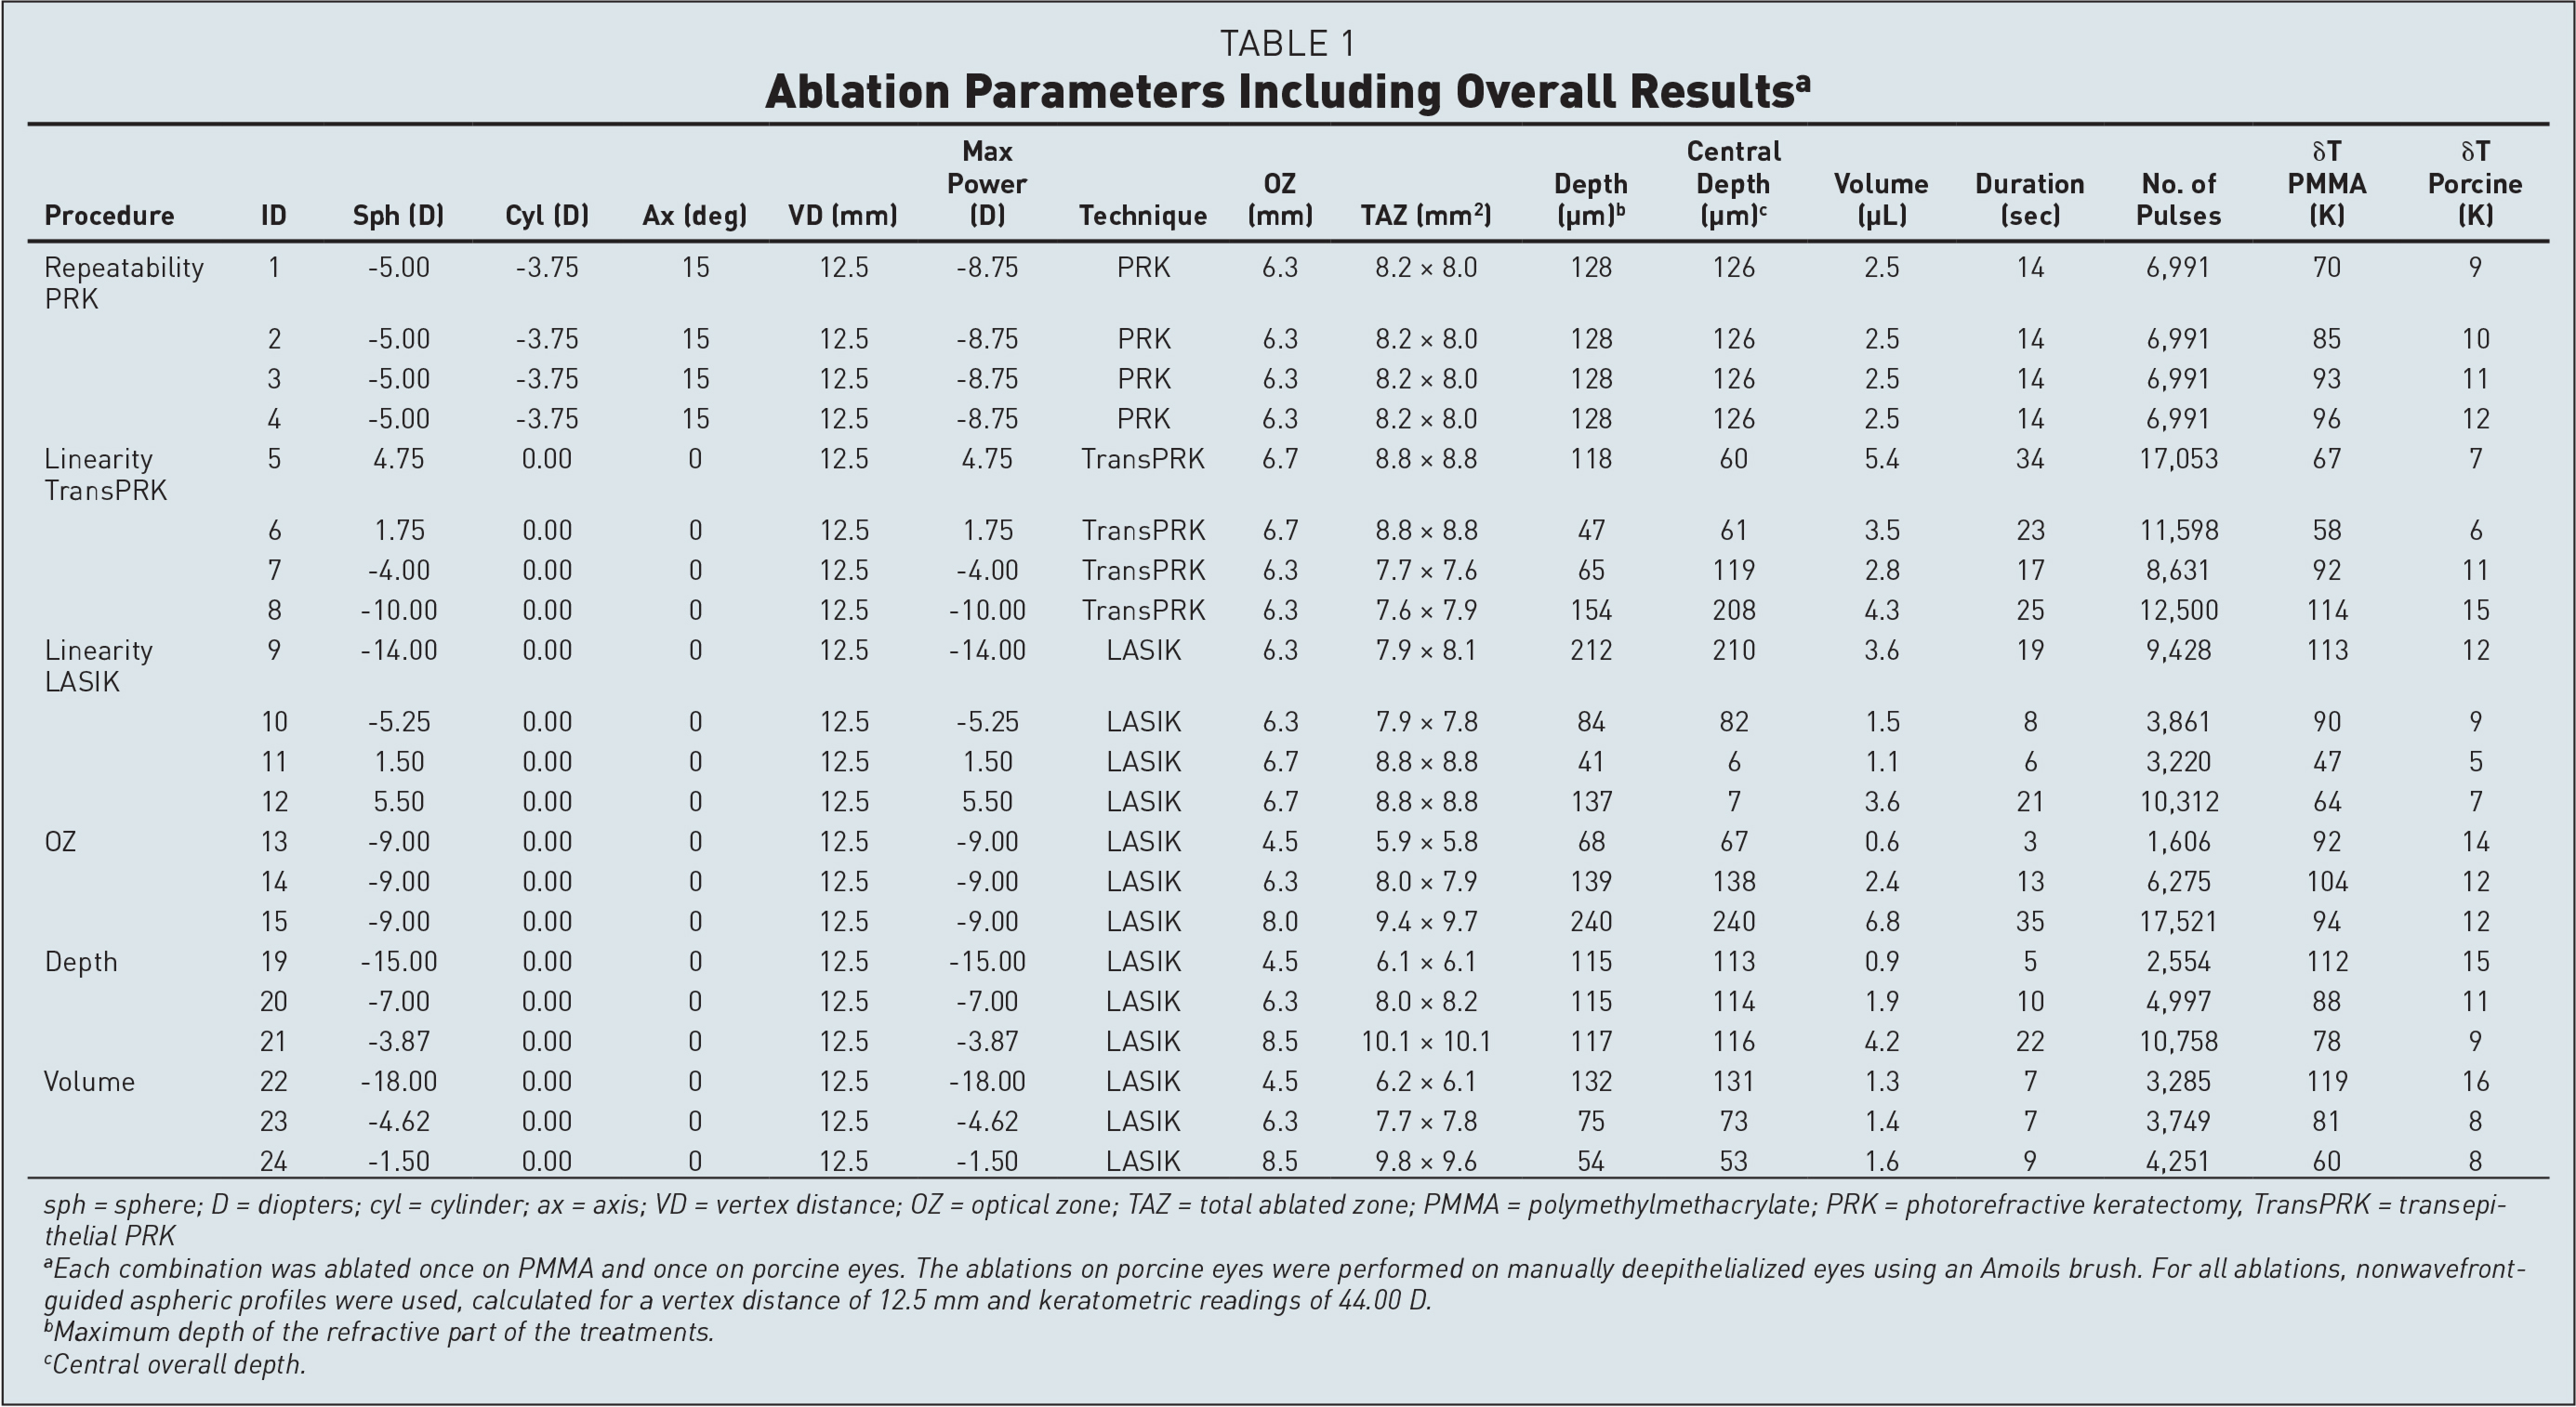 Ablation Parameters Including Overall Resultsa